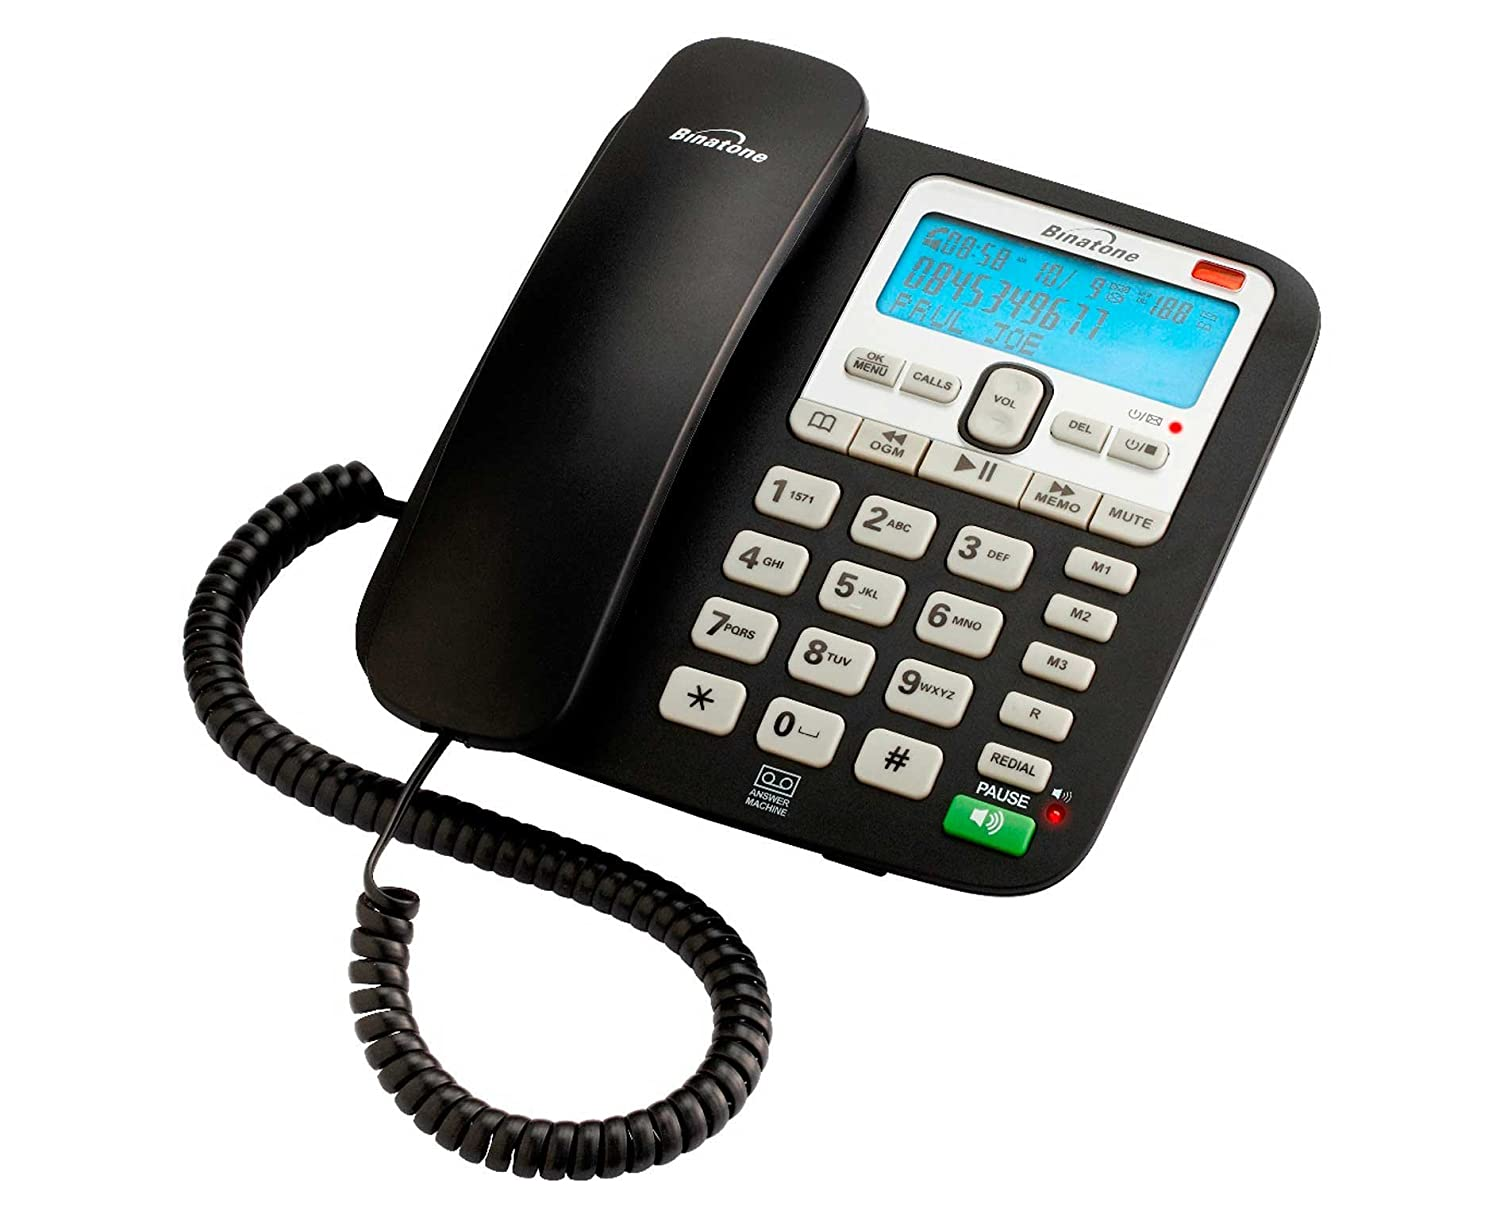 Binatone idect prism twin cordless phone with answering: amazon. Co.